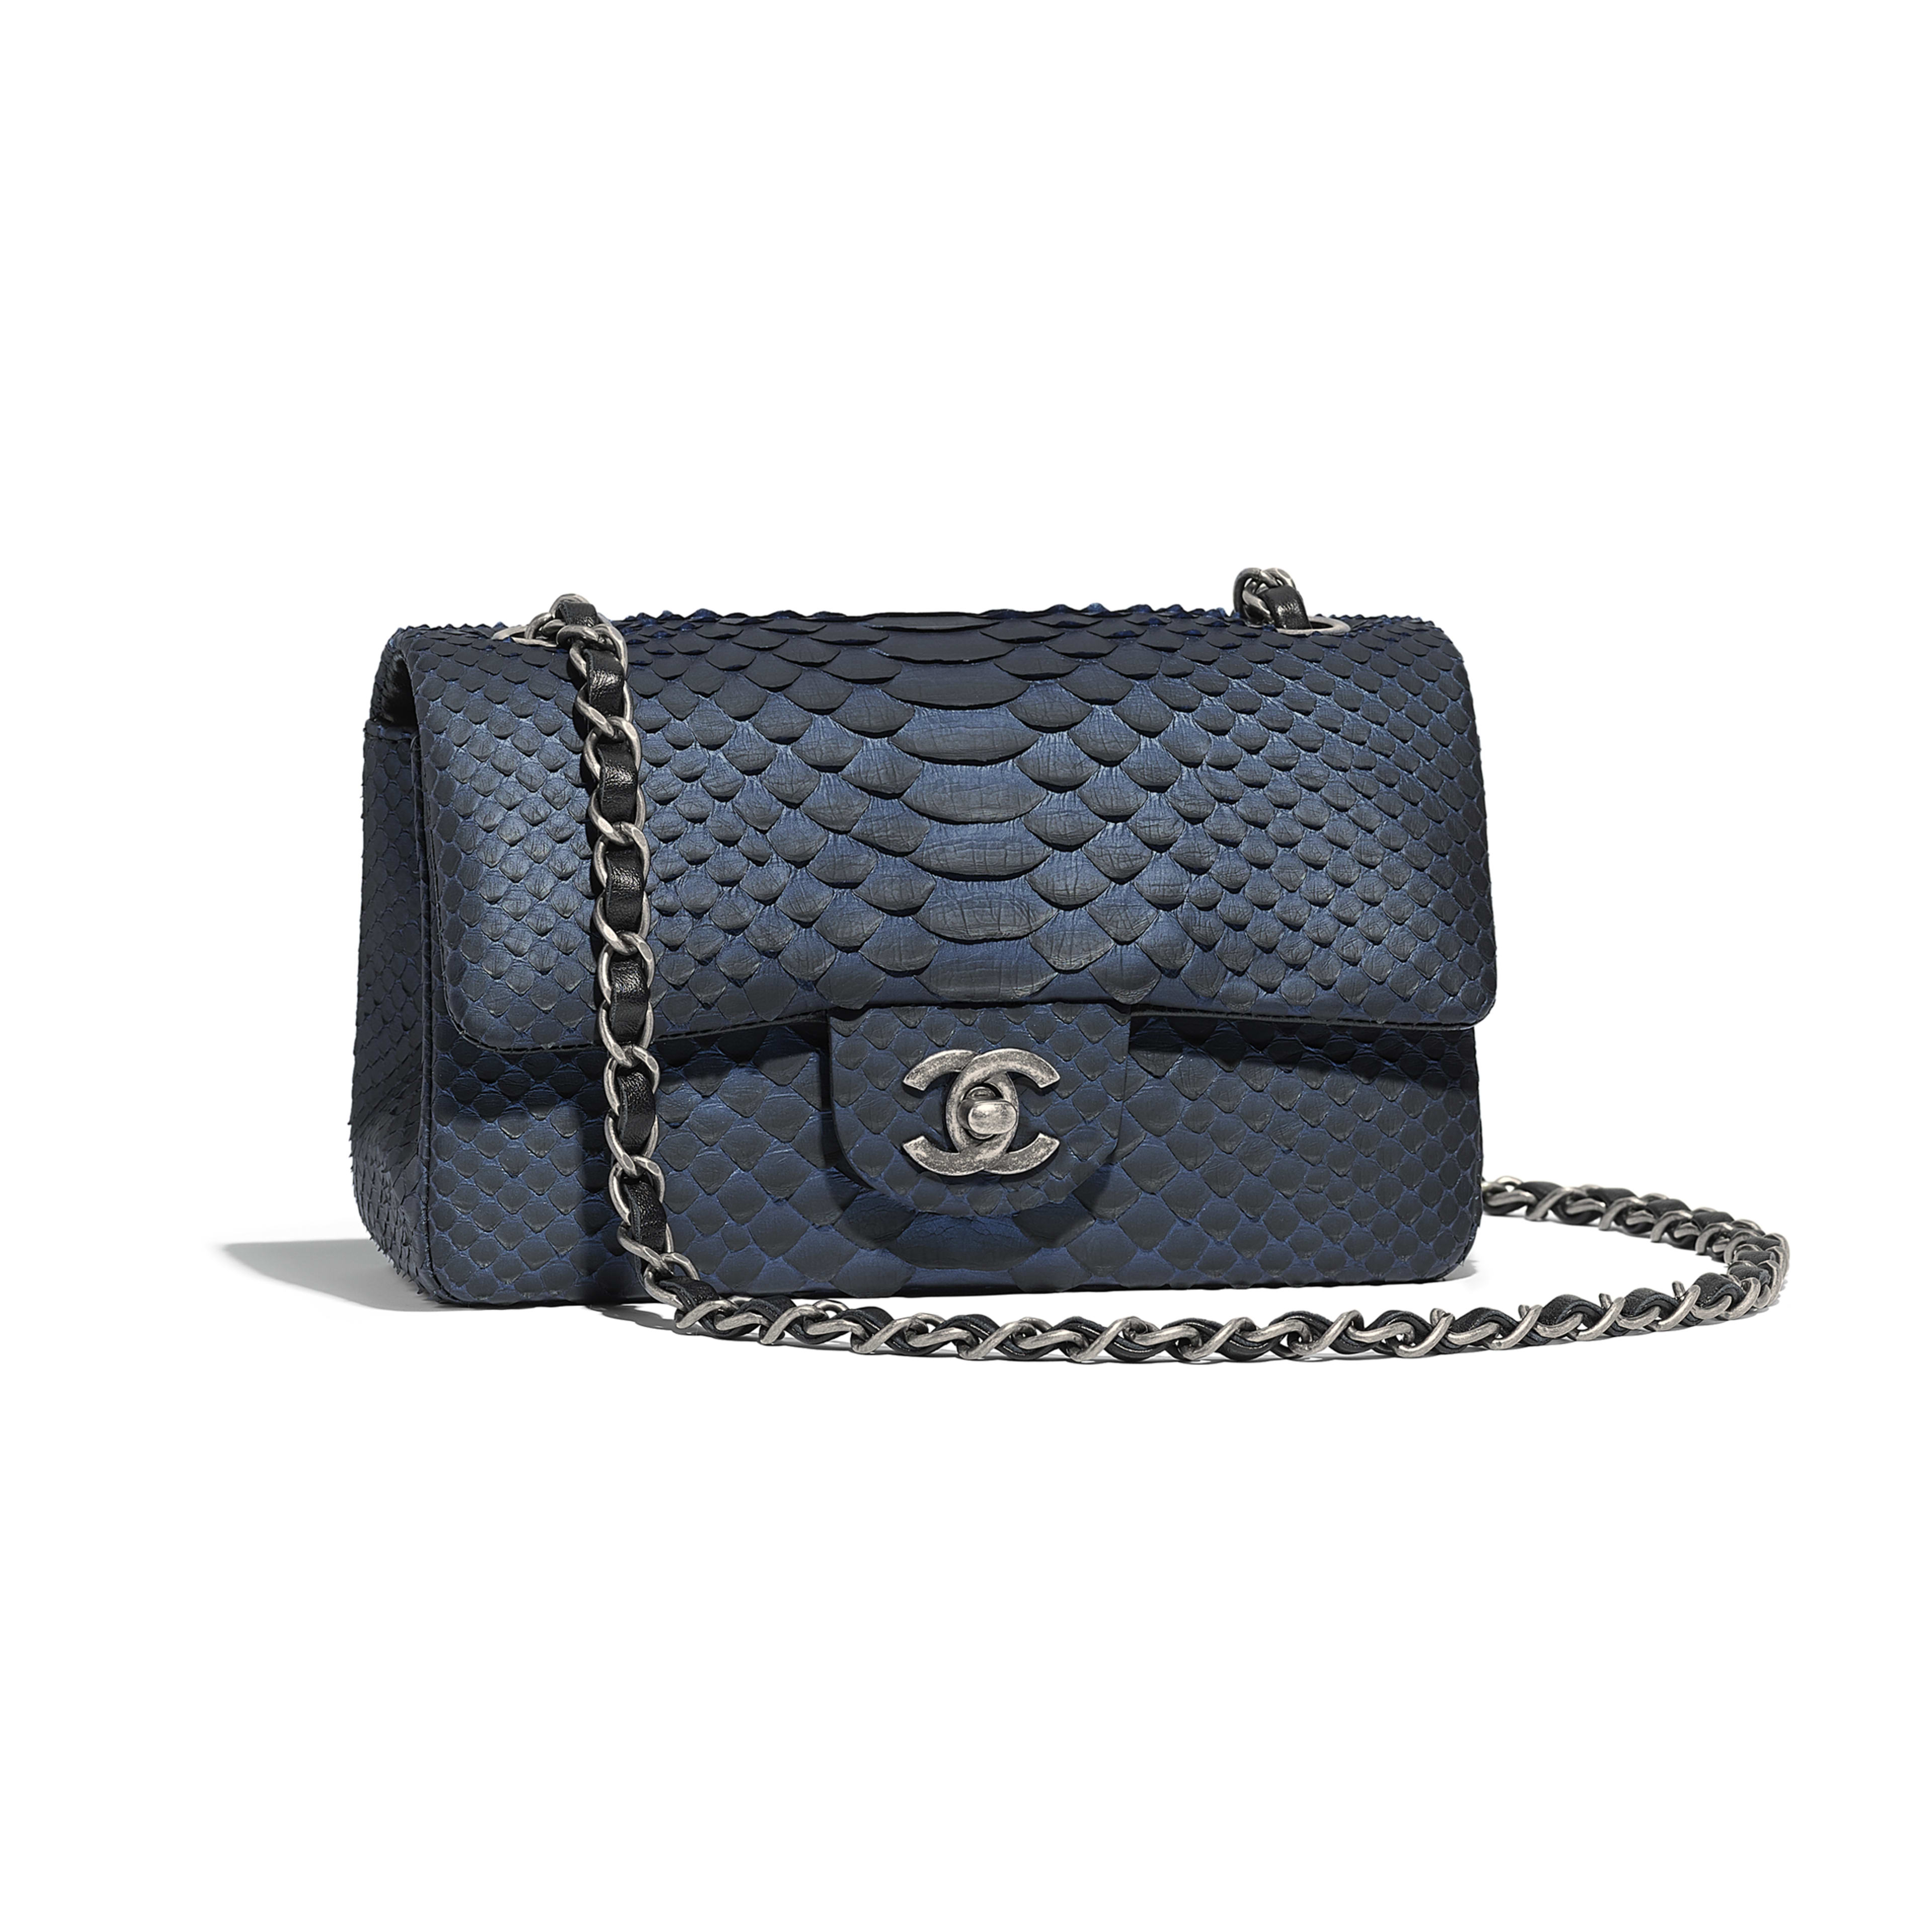 567e6243419a Python Ruthenium Finish Metal Blue Black Mini Flap Bag Chanel